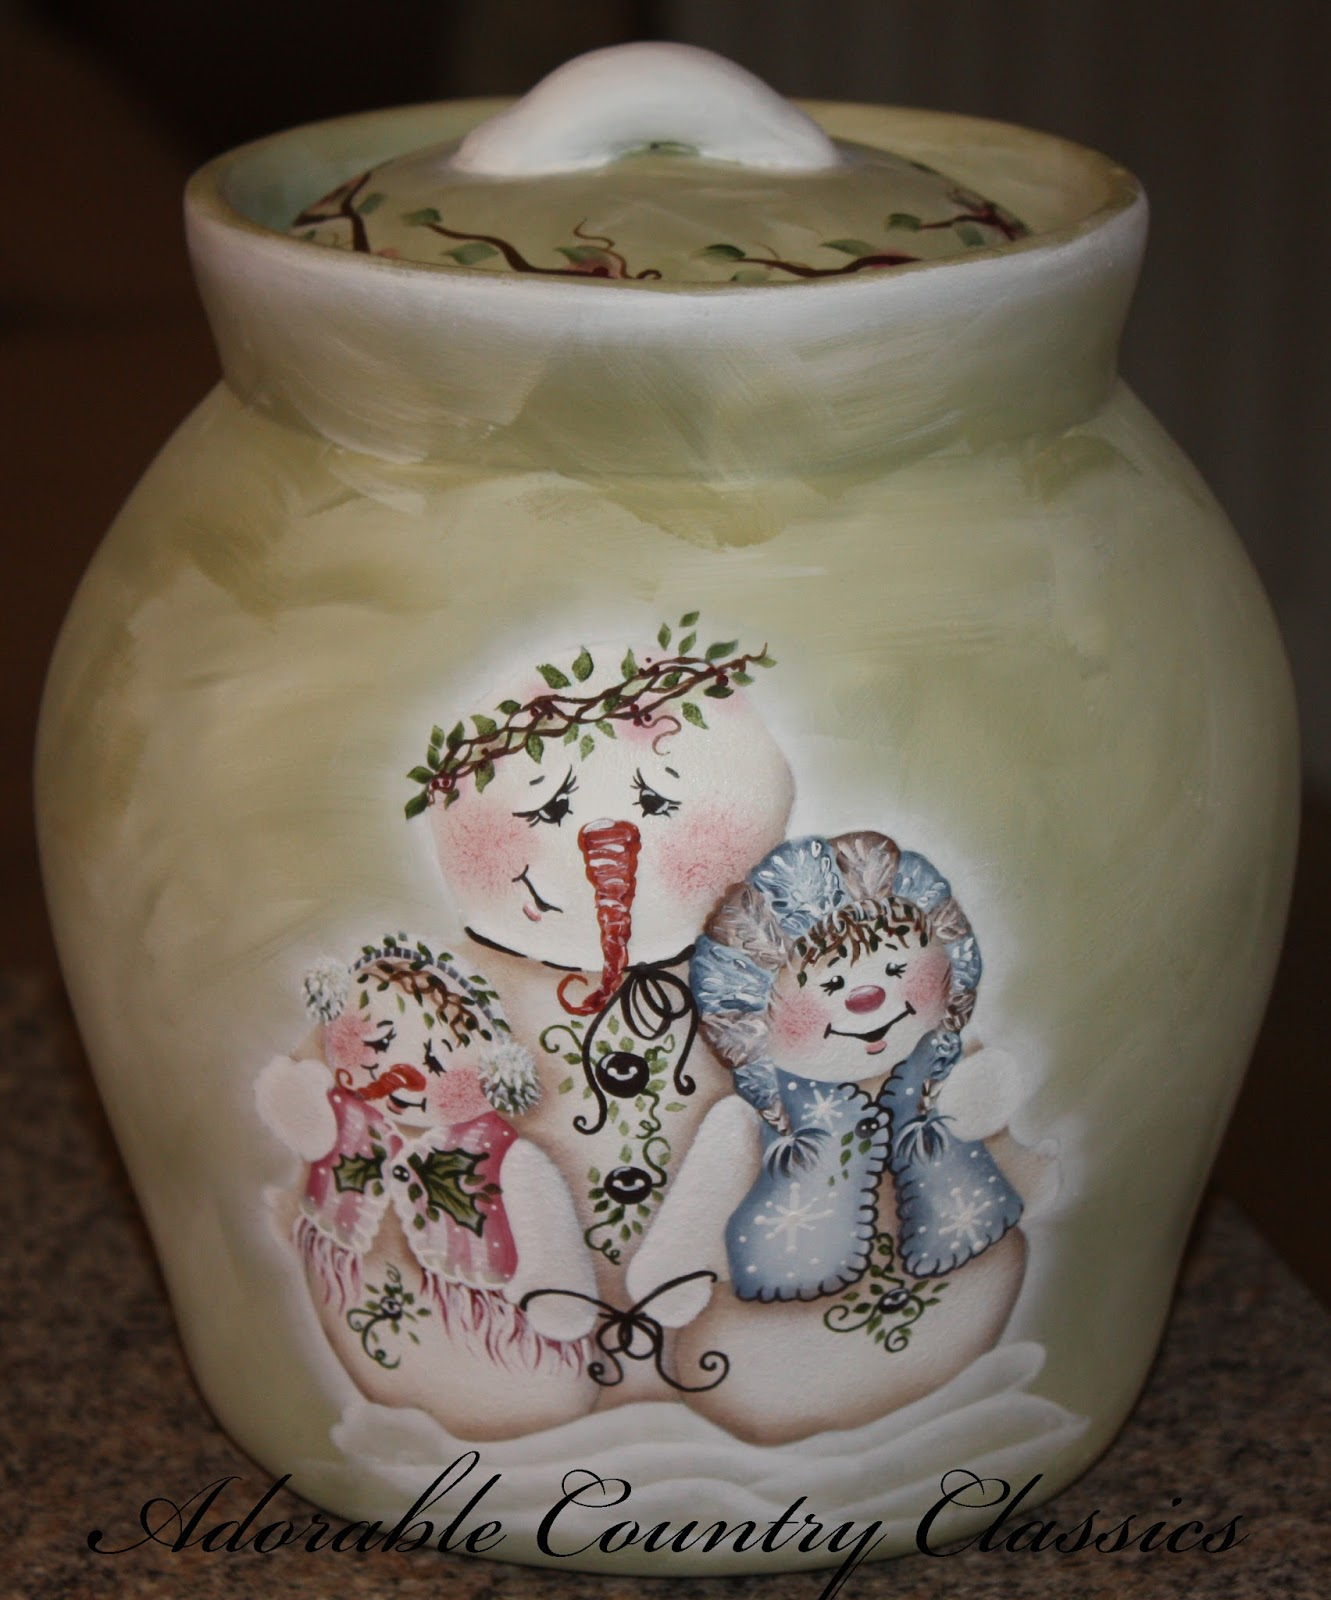 Ceramic Cookie Jar Sets Adorable Country Classics Cookie Jars Butter Churns